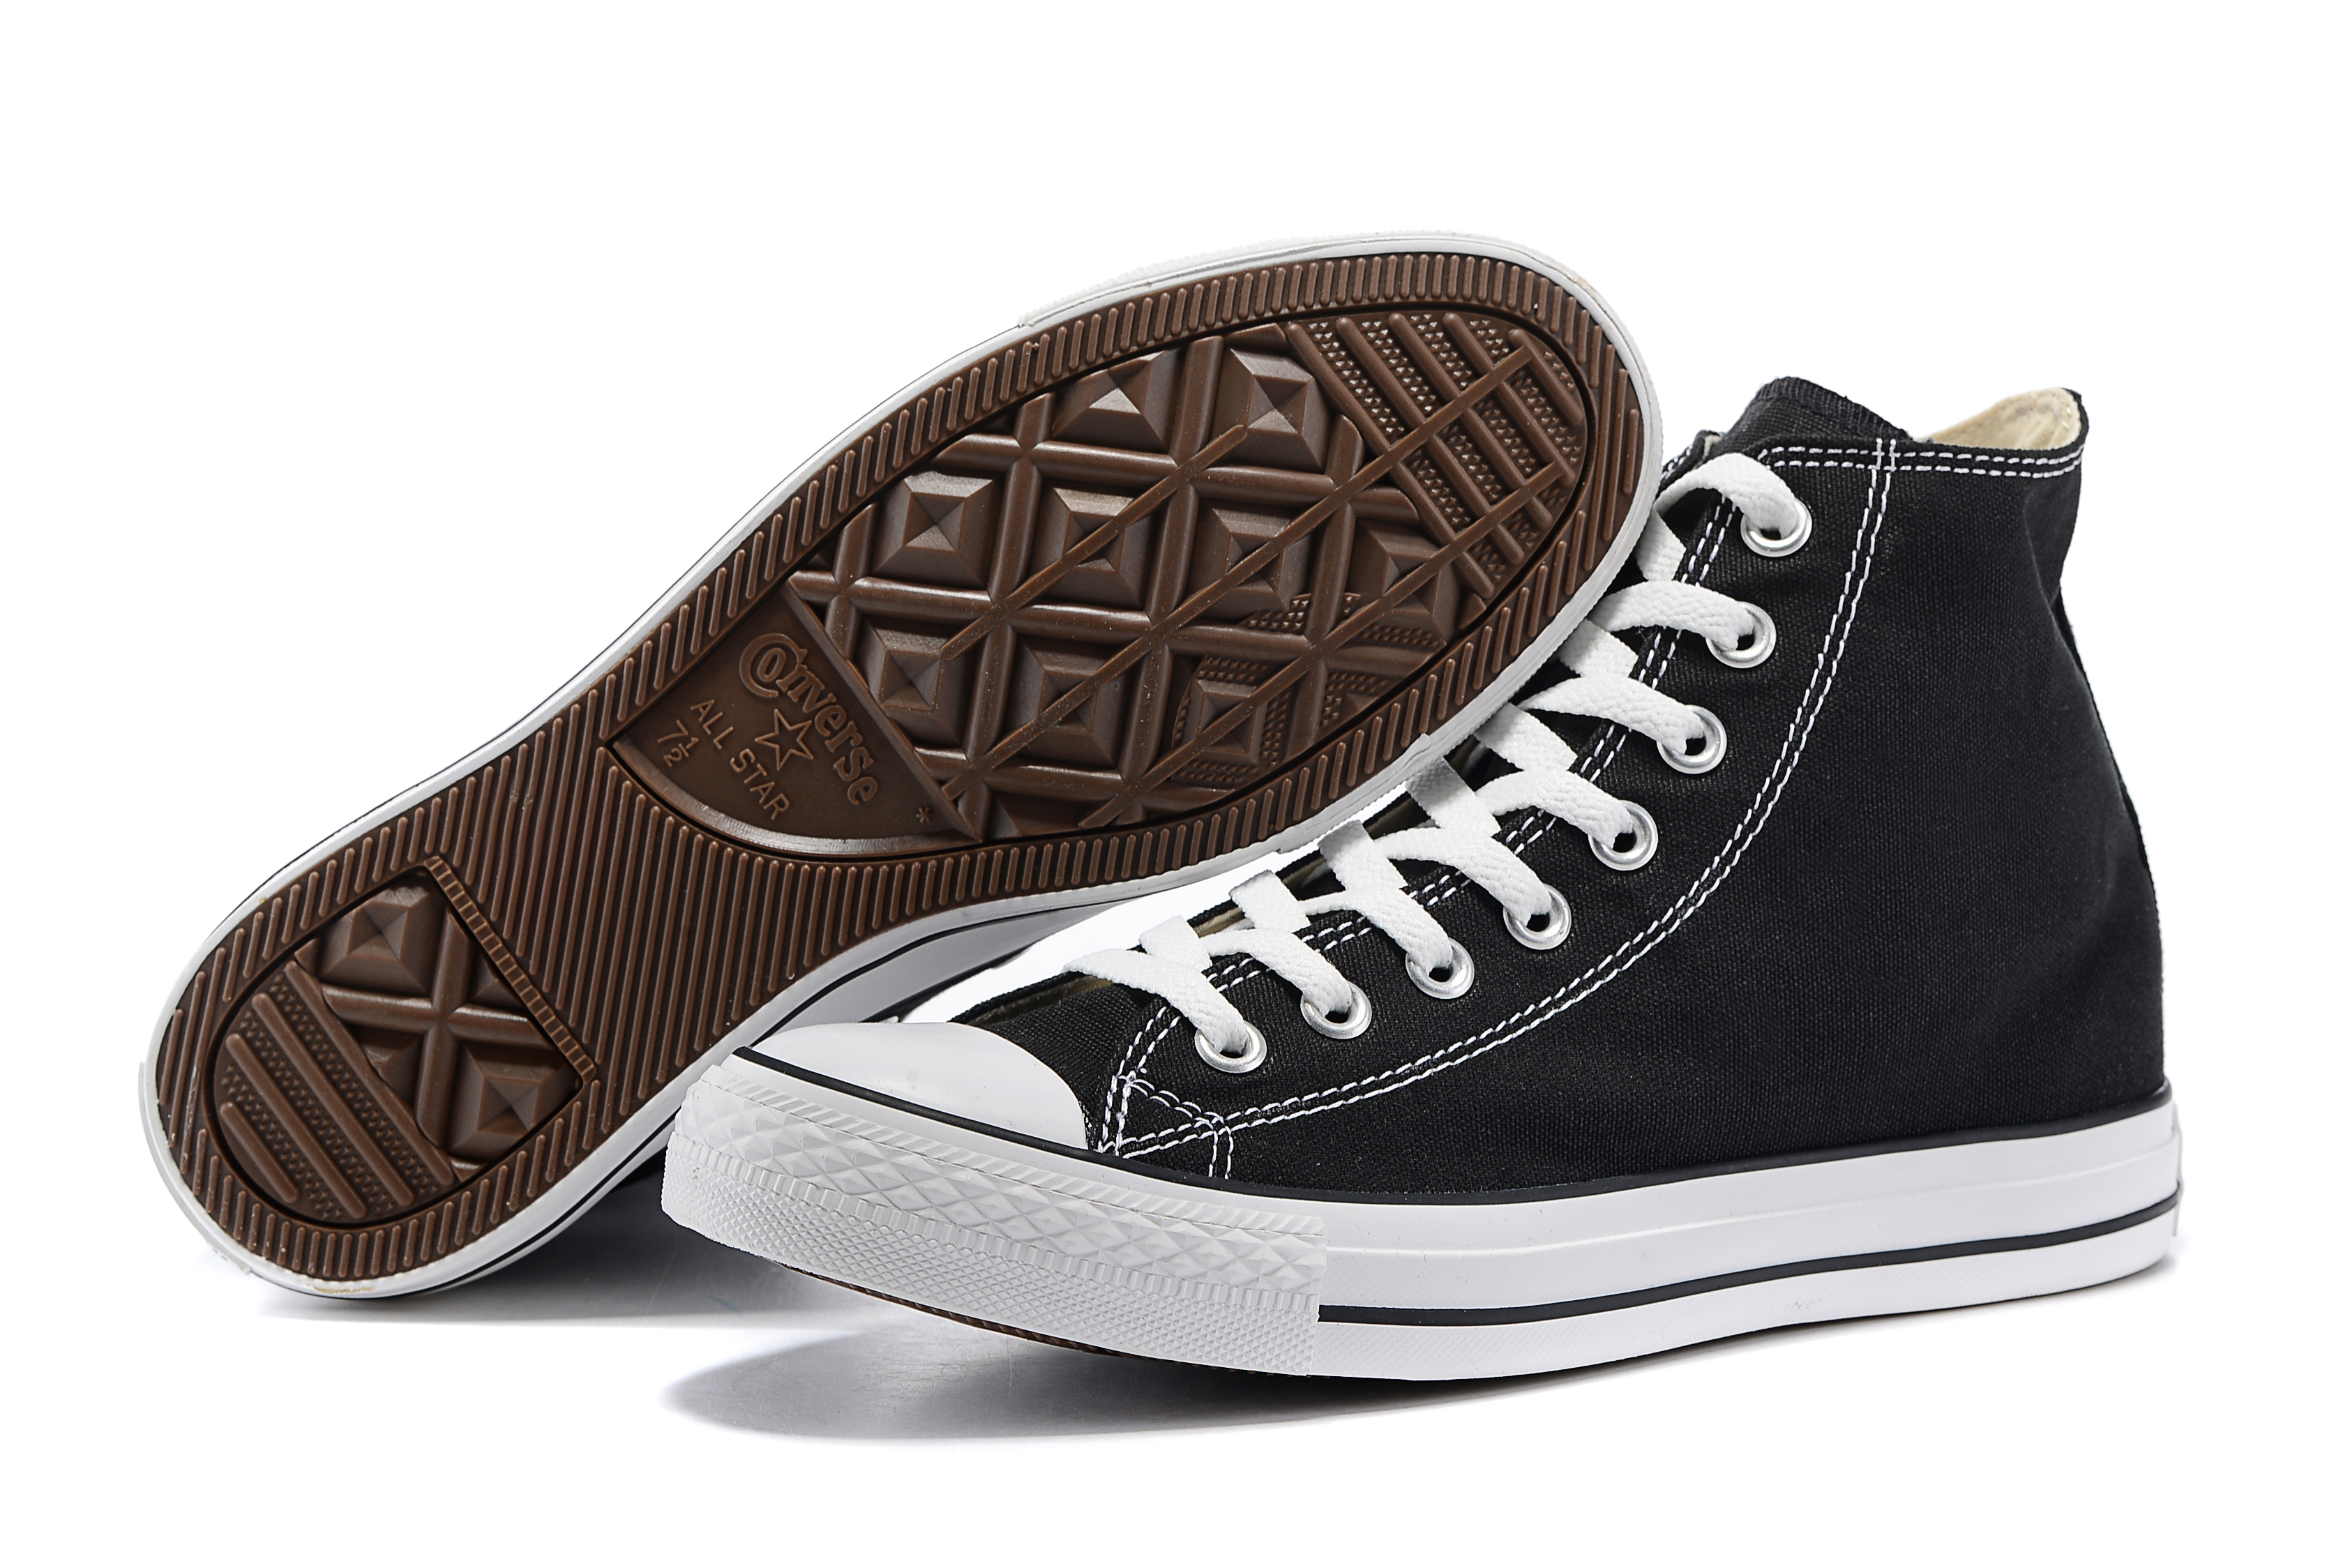 Converse All Star Canvas Shoes Man And Women High Classic Sneakers Skateboarding Shoes 7 Color